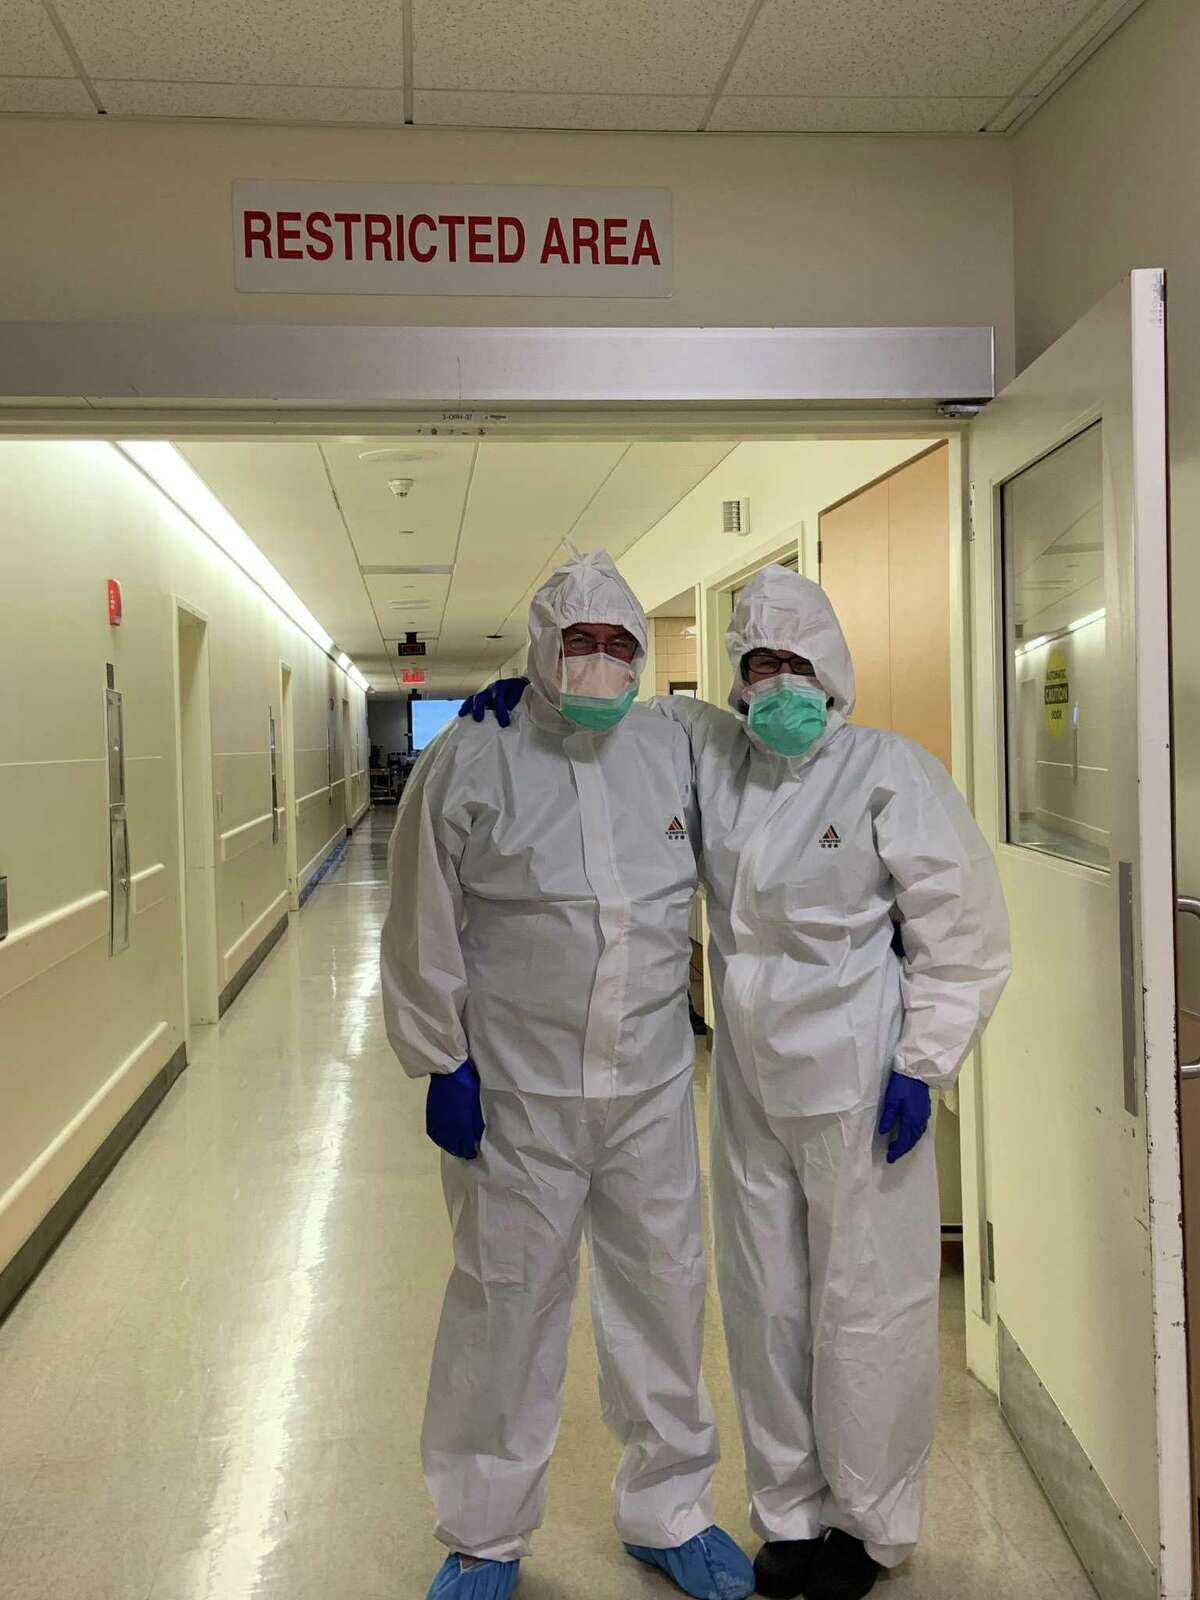 Paul Darragh, CRNA and Theresa Bowling, MD, at St. Vincent's Medical Center, Bridgeport in coveralls from Grace Farms Foundation.